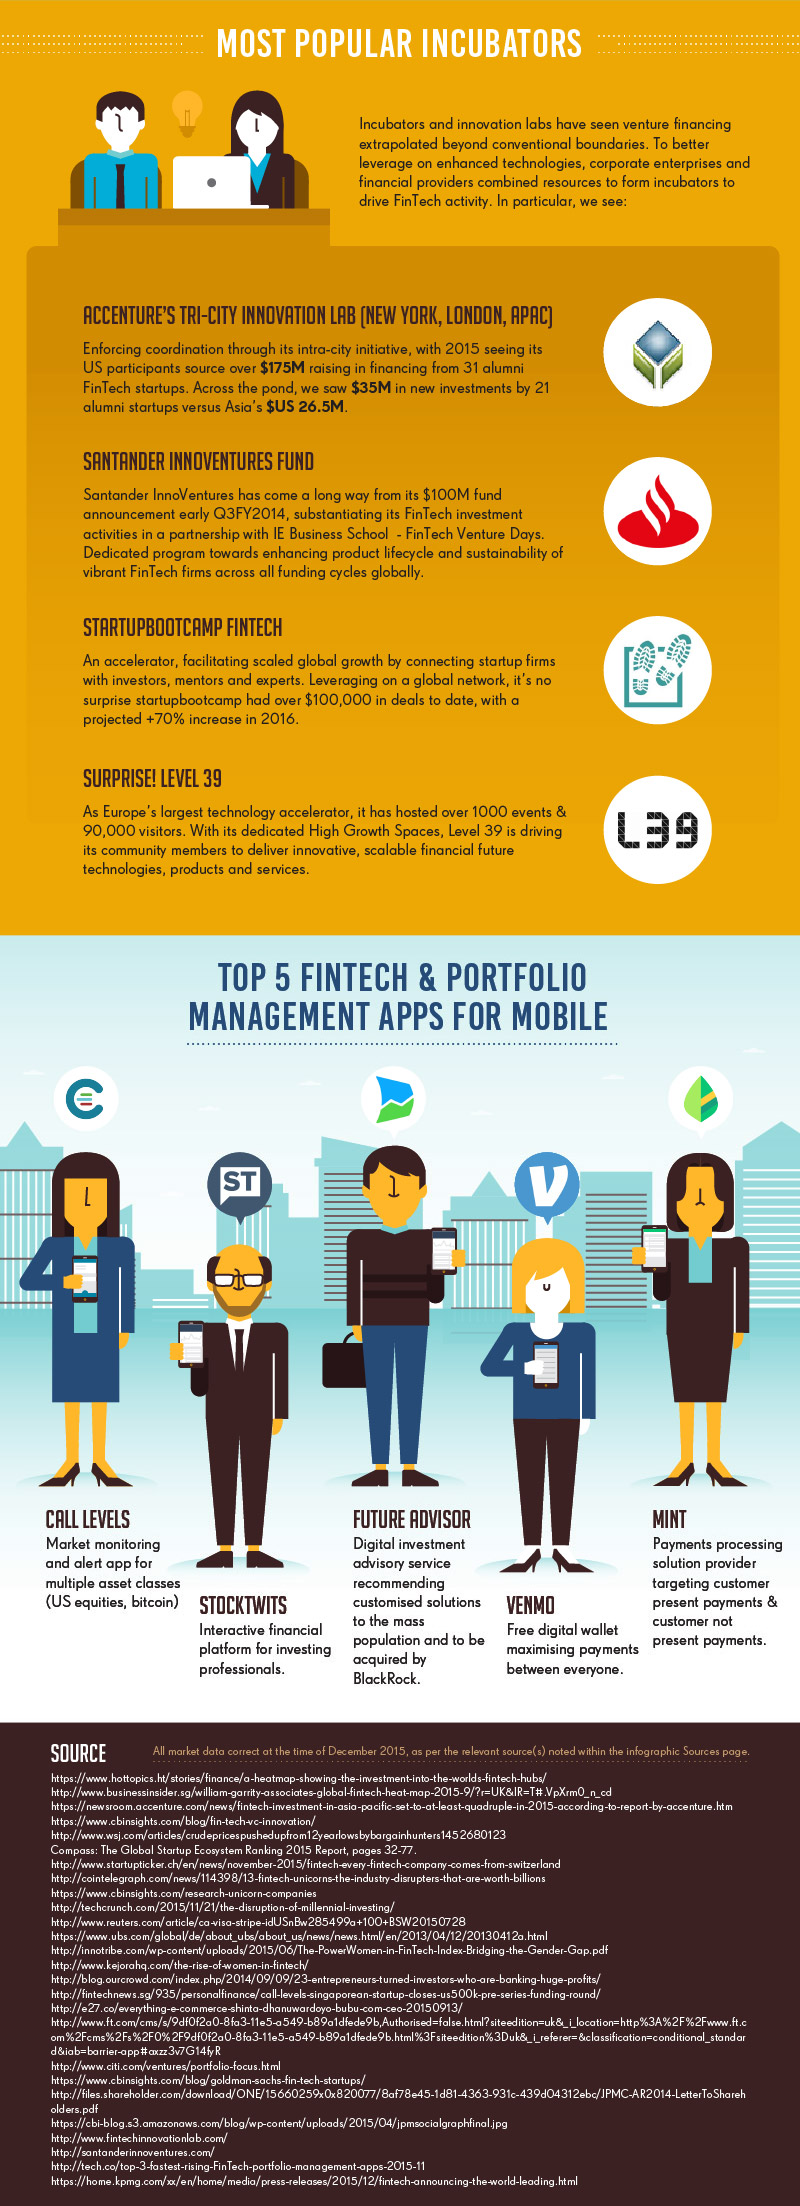 Top 5 Fintech And Portfolio Management Apps for Mobile